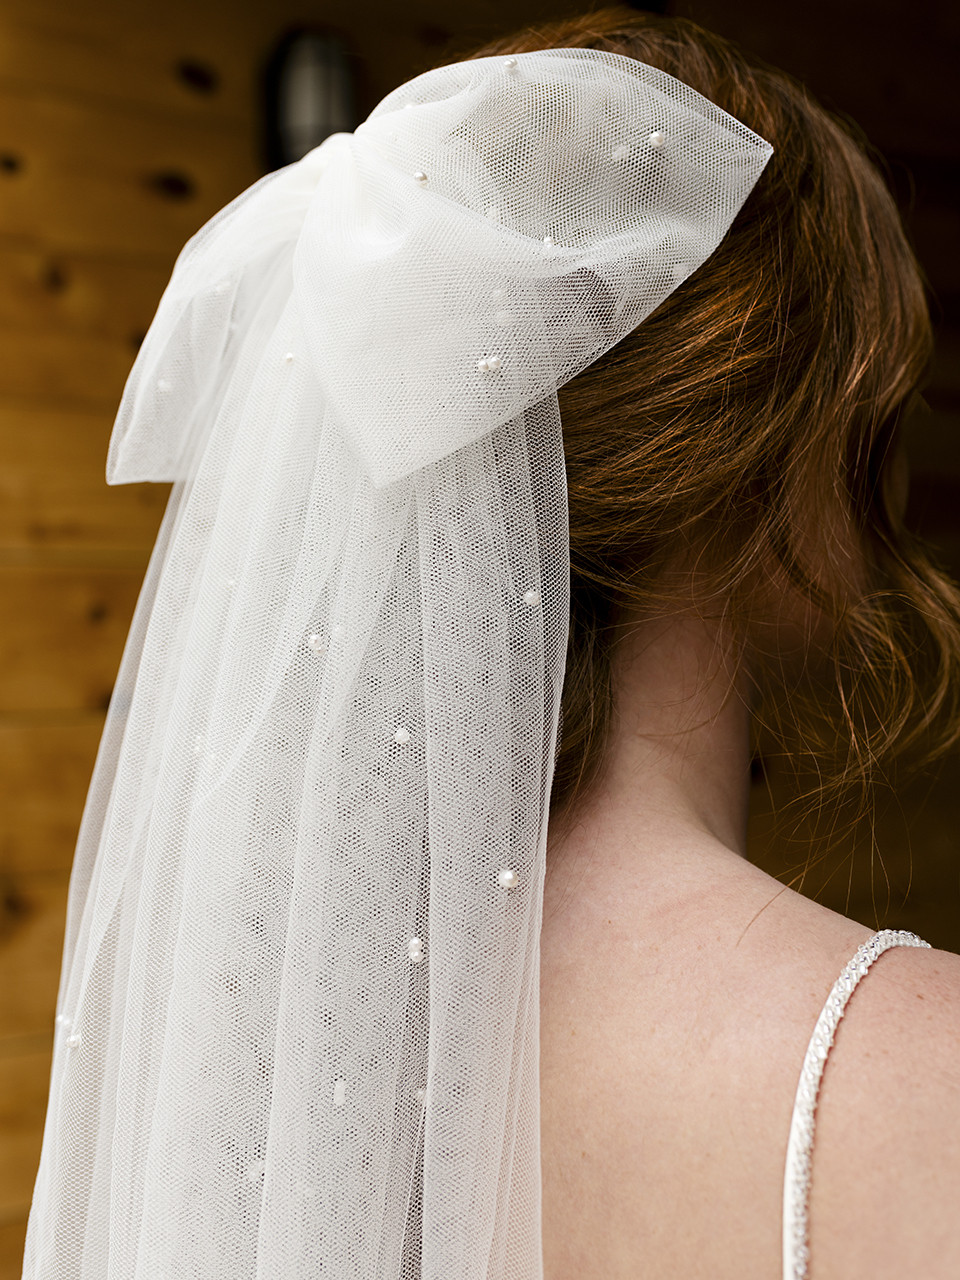 En Vogue Bridal Style V2297C - English Luxe Tull Veil With Scattered Pearls And Raw Edge - 108 Inches